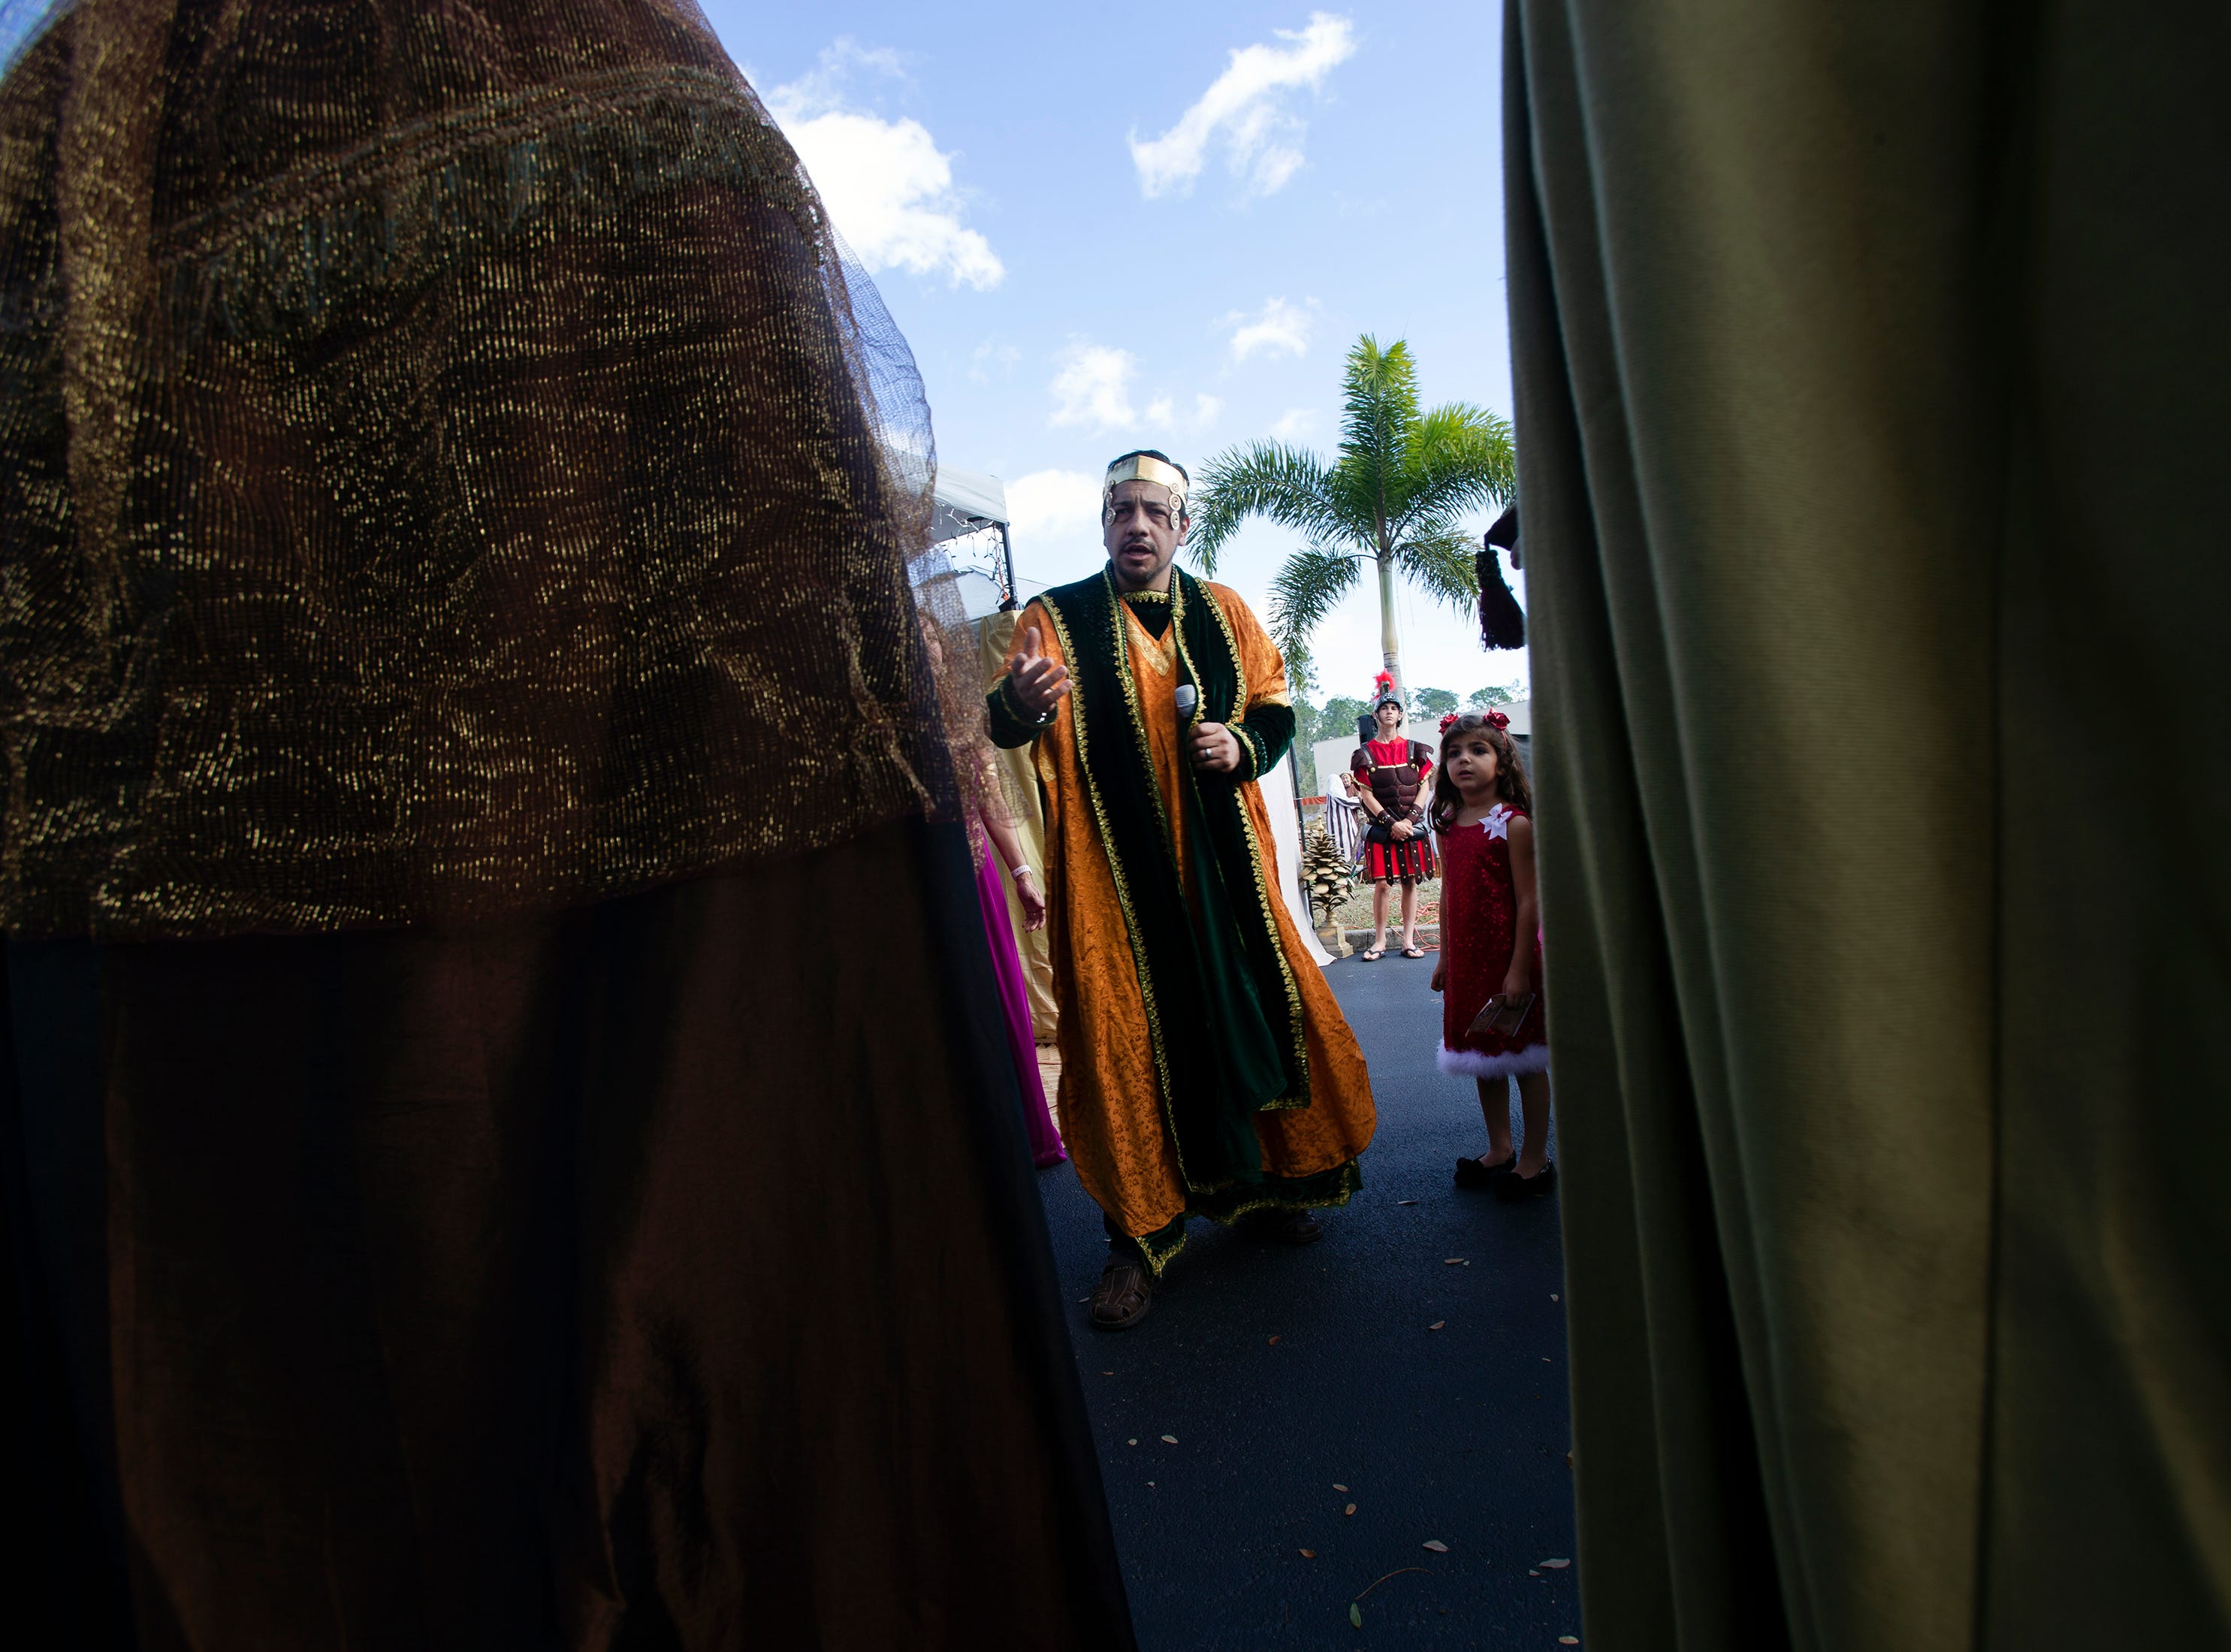 Alejandro Garcia plays King Herod the Great during a live nativity scene at St. Agnes Catholic Church on Sunday, Dec. 16, 2018, in East Naples.